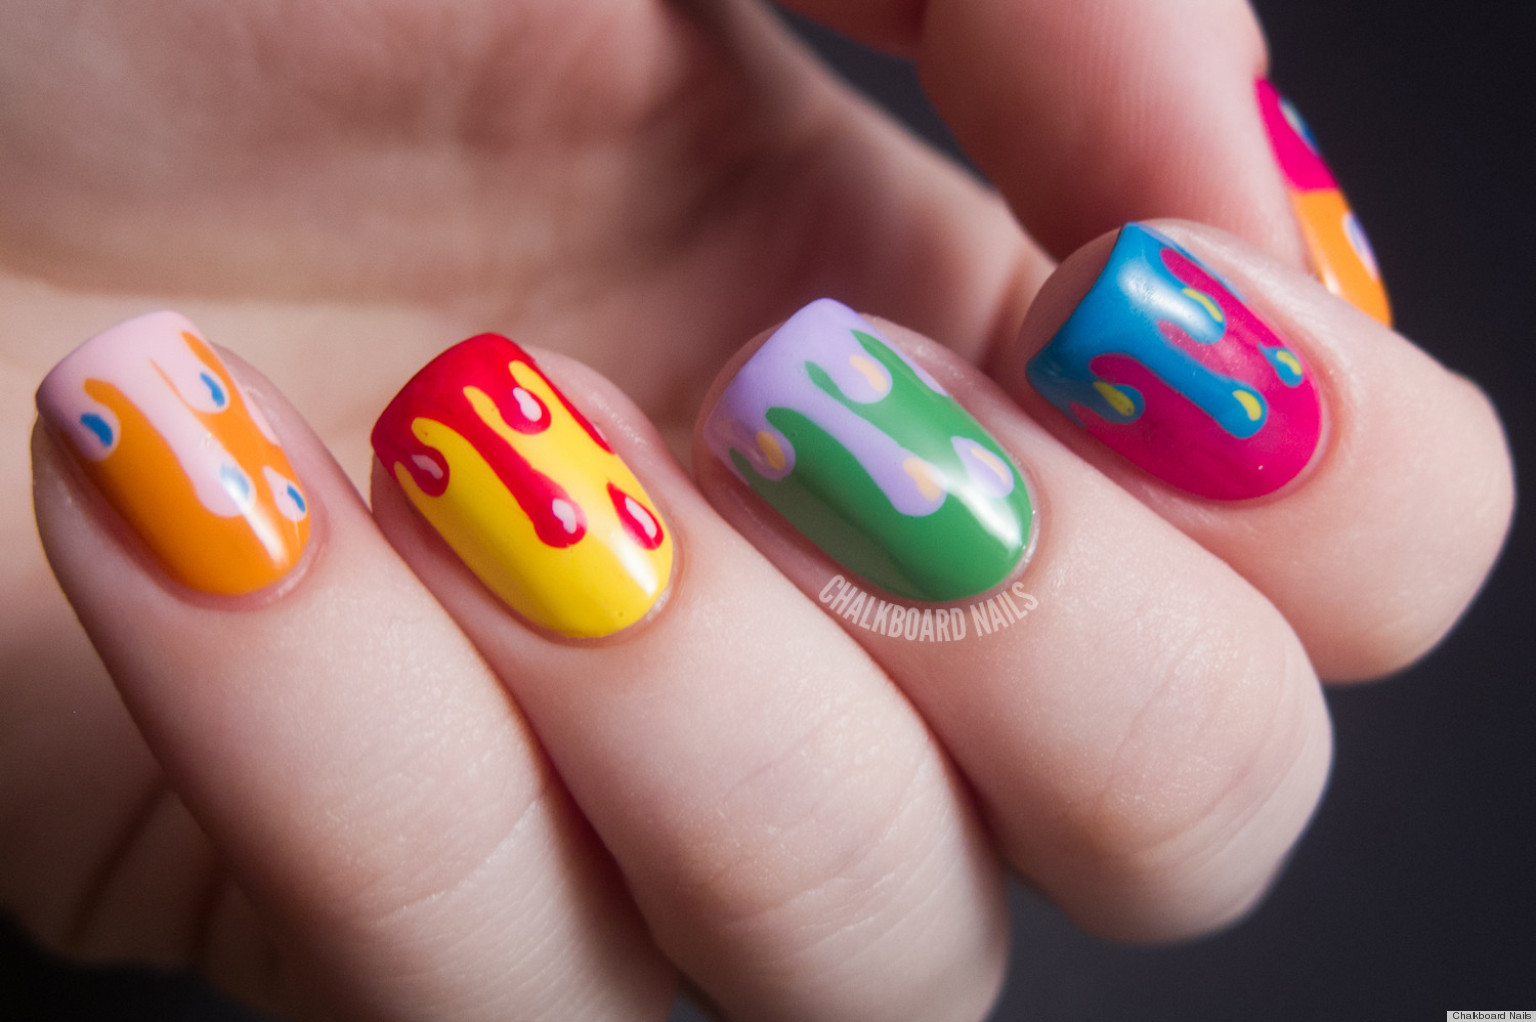 Diy nail ideas paint drip nail art and more of our manicures from diy nail ideas paint drip nail art and more of our manicures from this weekend photos huffpost prinsesfo Image collections